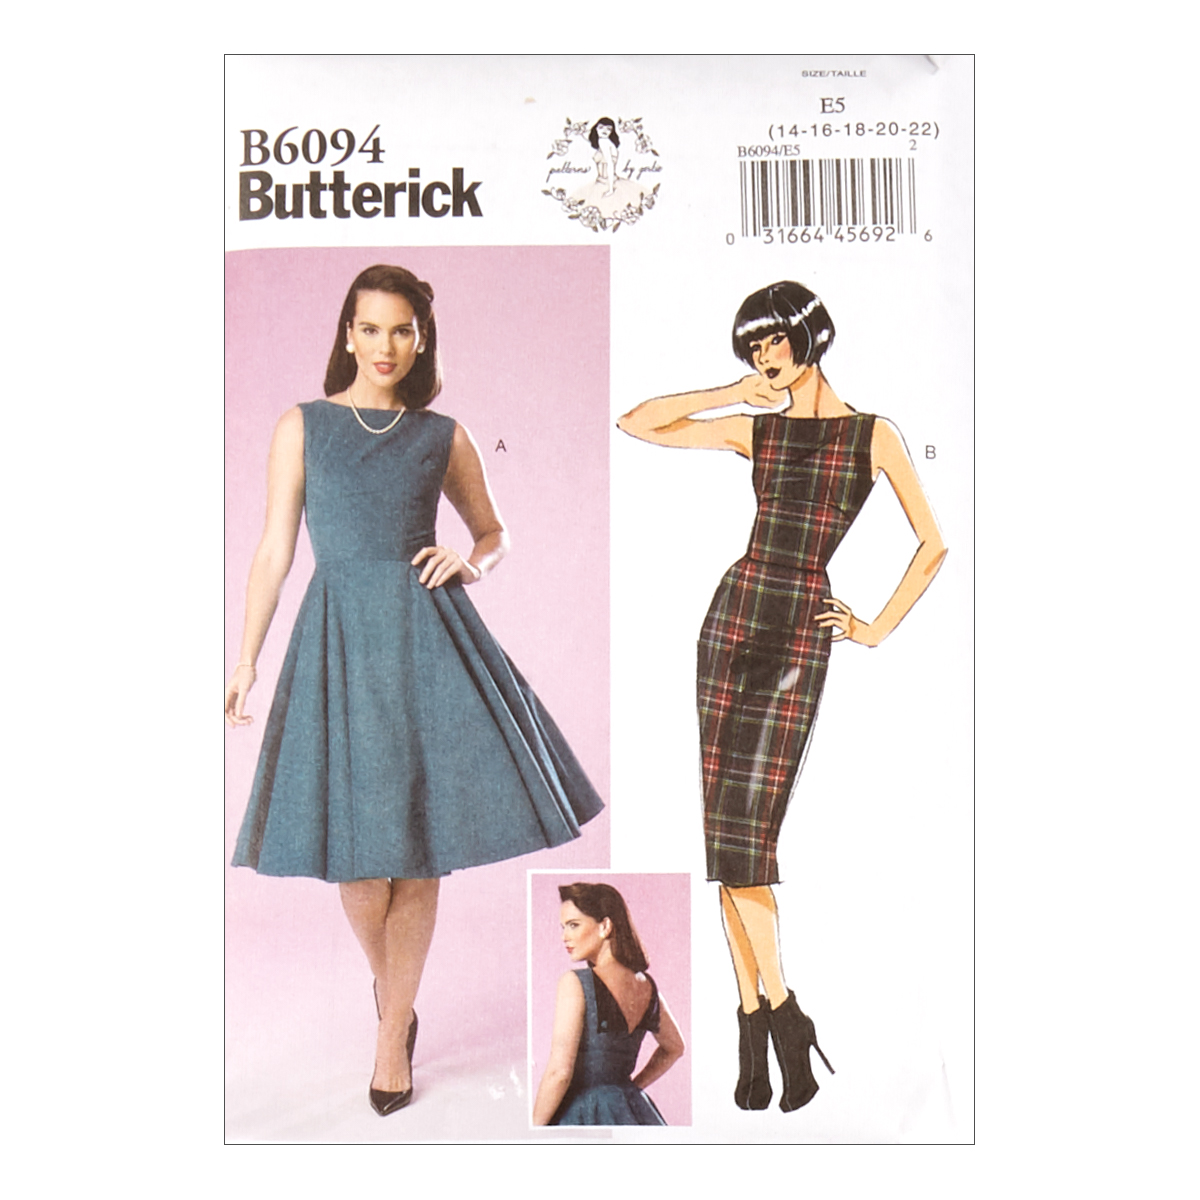 1950s Fabrics & Colors in Fashion Butterick B6094 Patterns by Gertie Misses Dress E5 Sizes 14-22 $11.97 AT vintagedancer.com